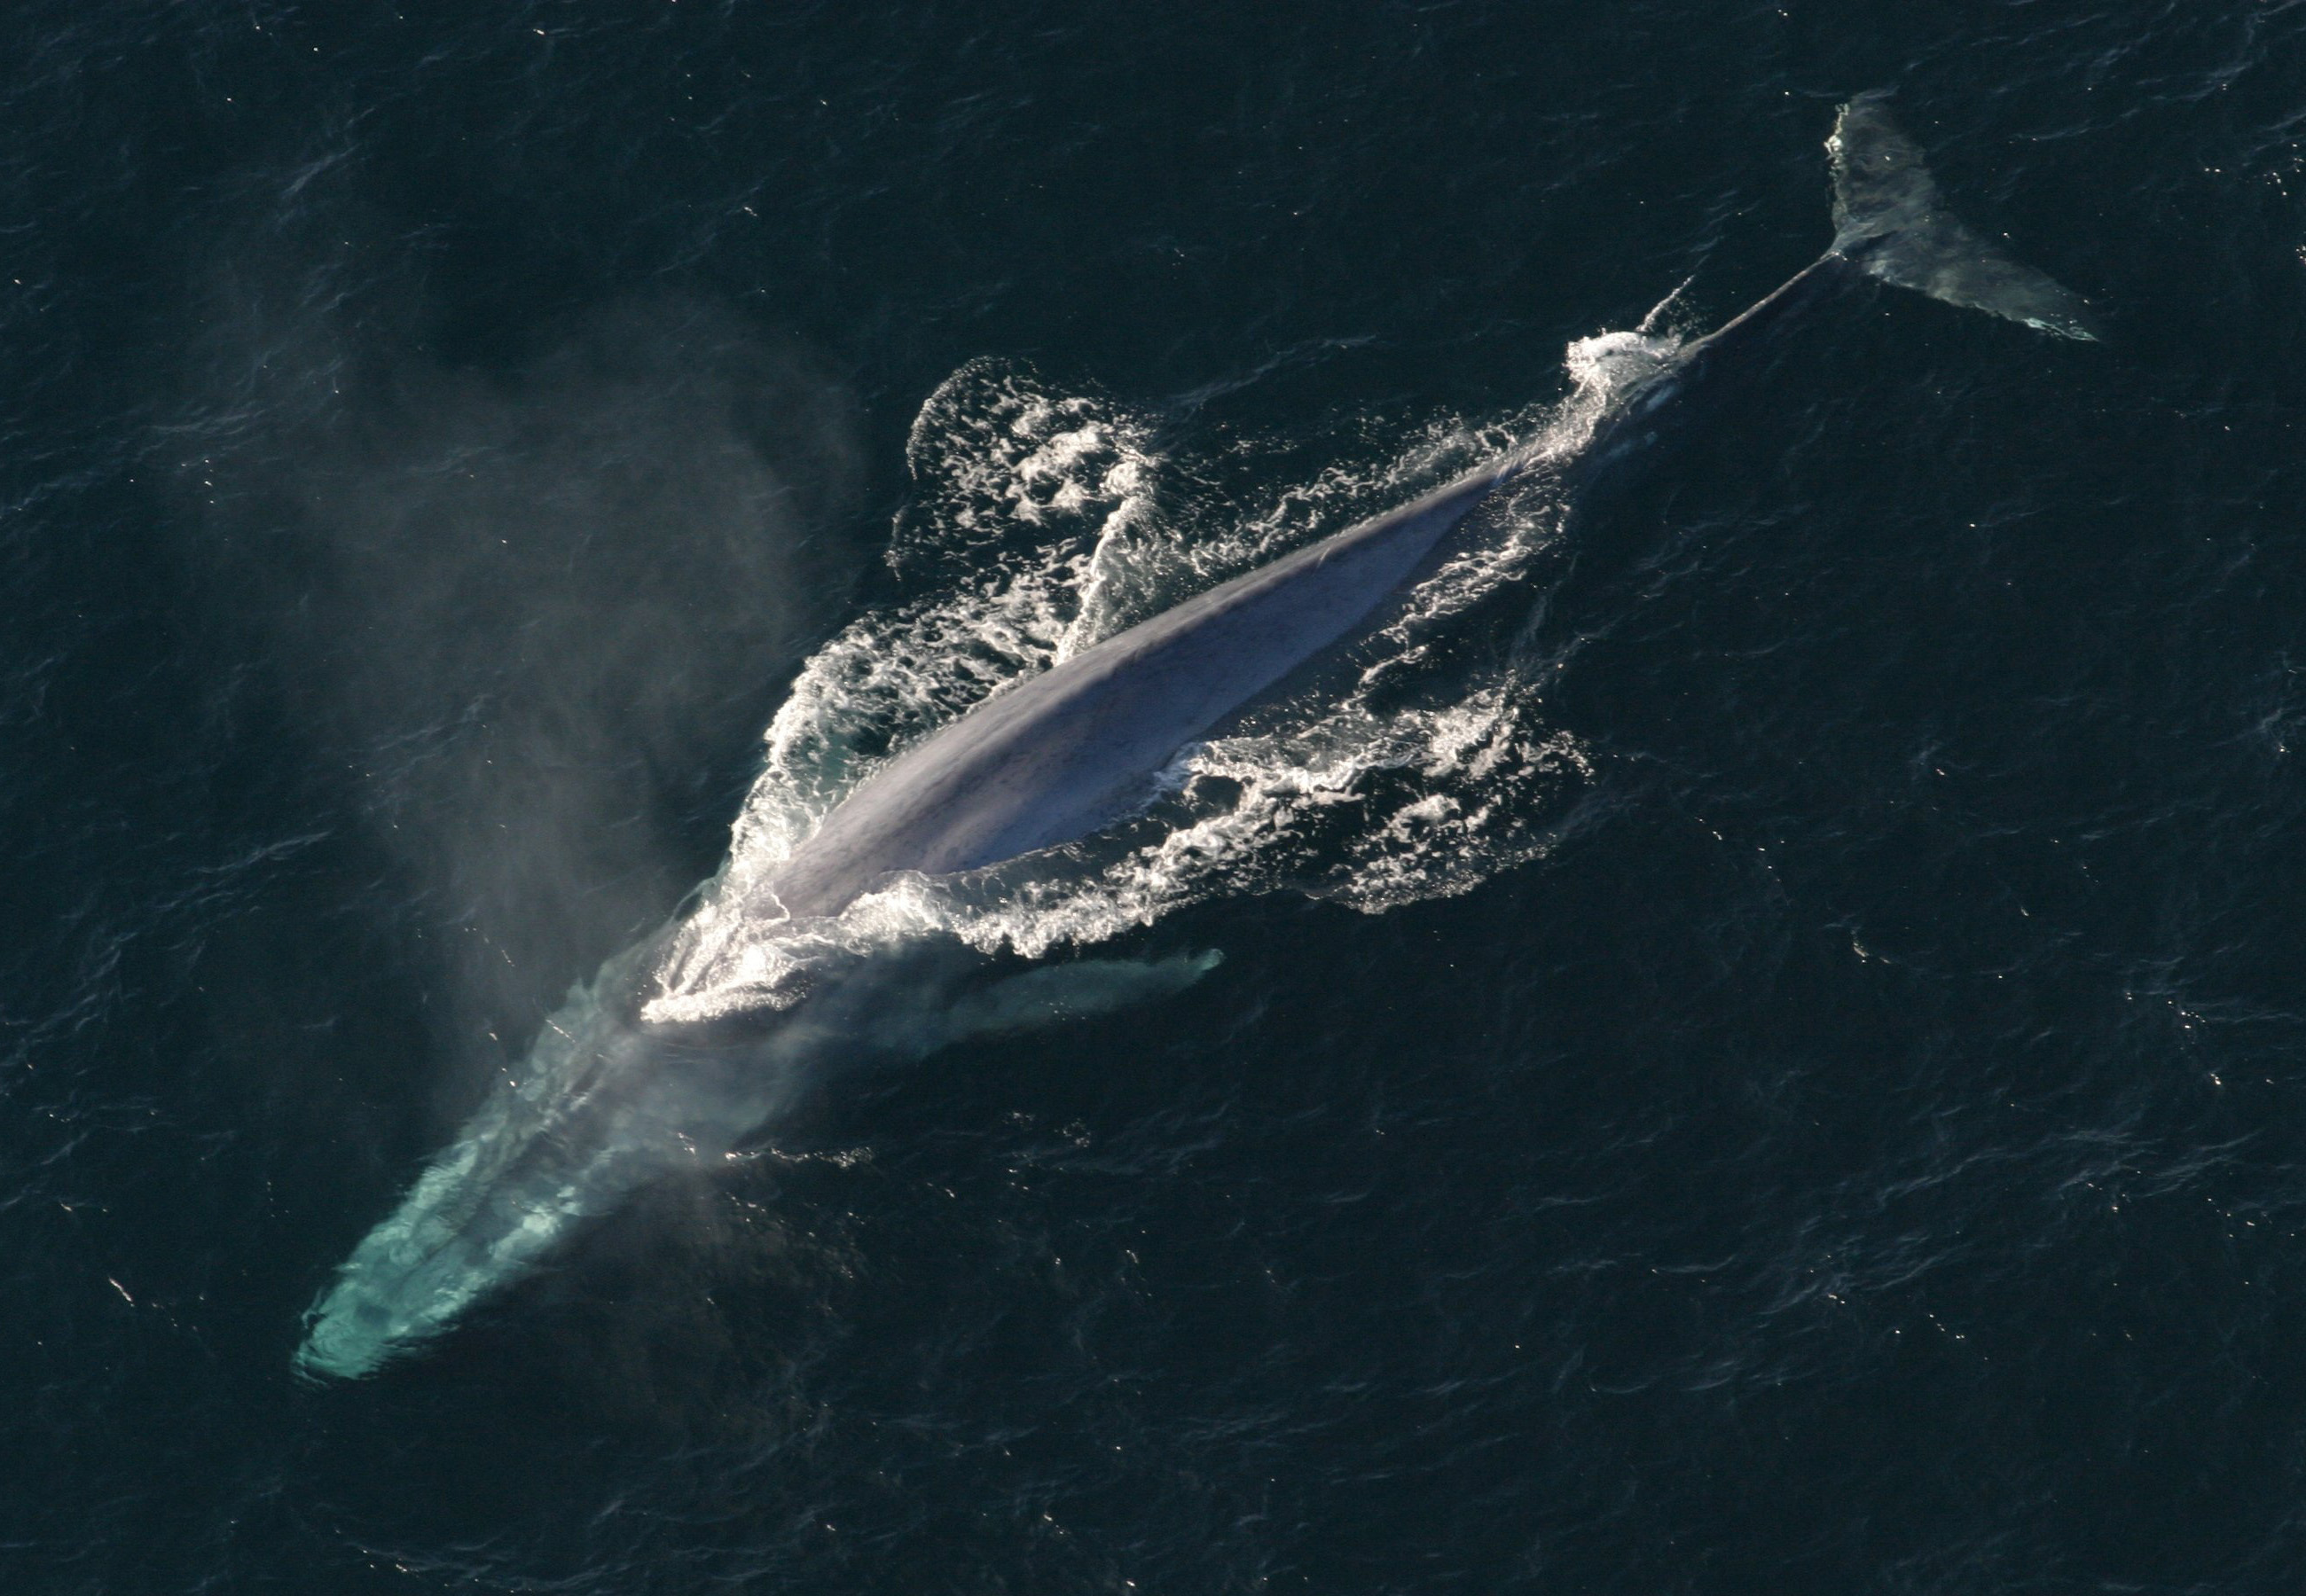 Blue Whale Facts